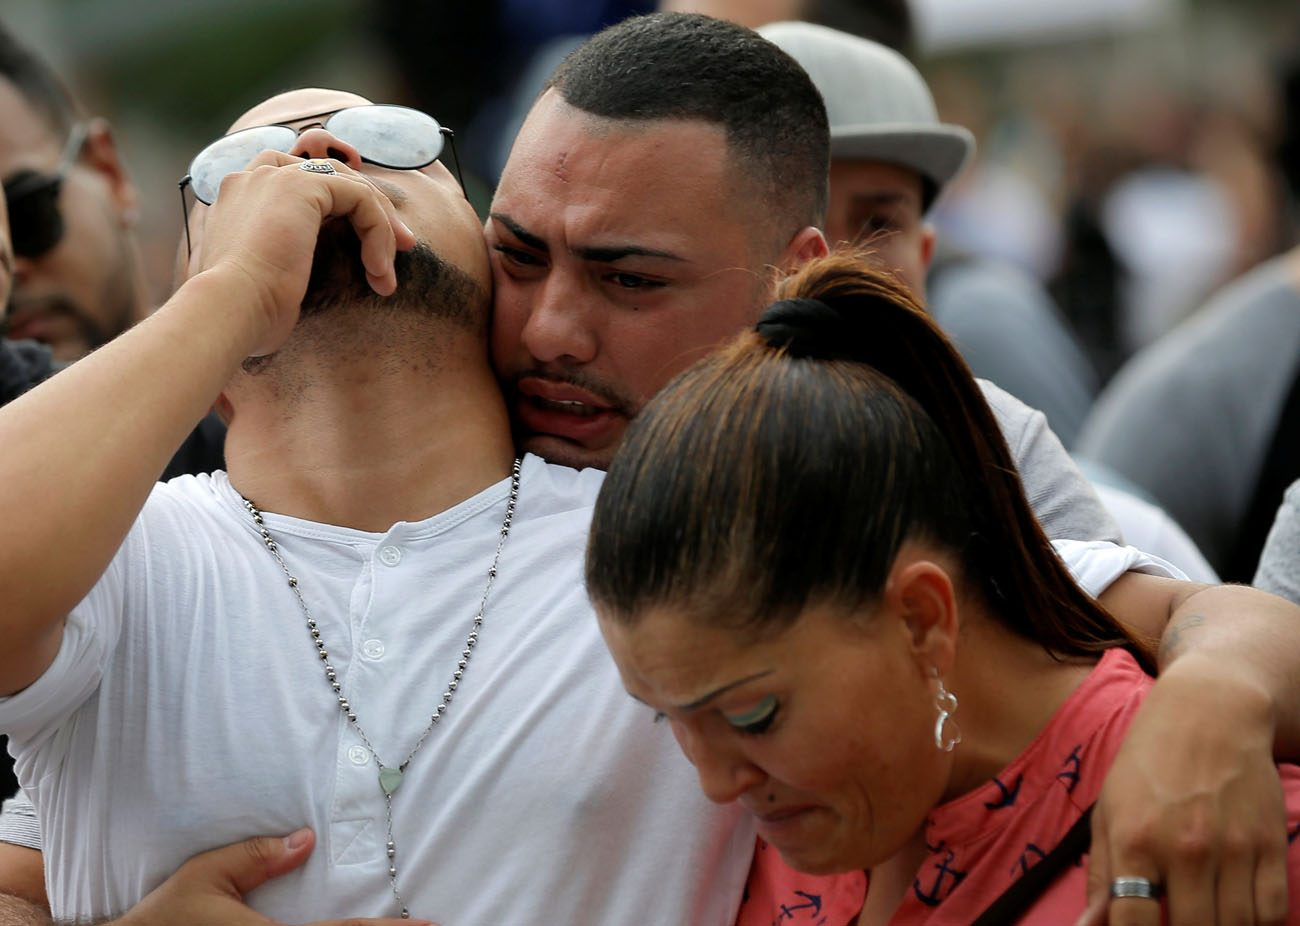 Mourners grieve at a June 13 vigil for the victims of the mass shooting at the Pulse gay nightclub in Orlando, Fla. A lone gunman, pledging allegiance to the Islamic State terrorist group, killed 49 people early June 12 at the nightclub. (CNS photo/Jim Young, Reuters)